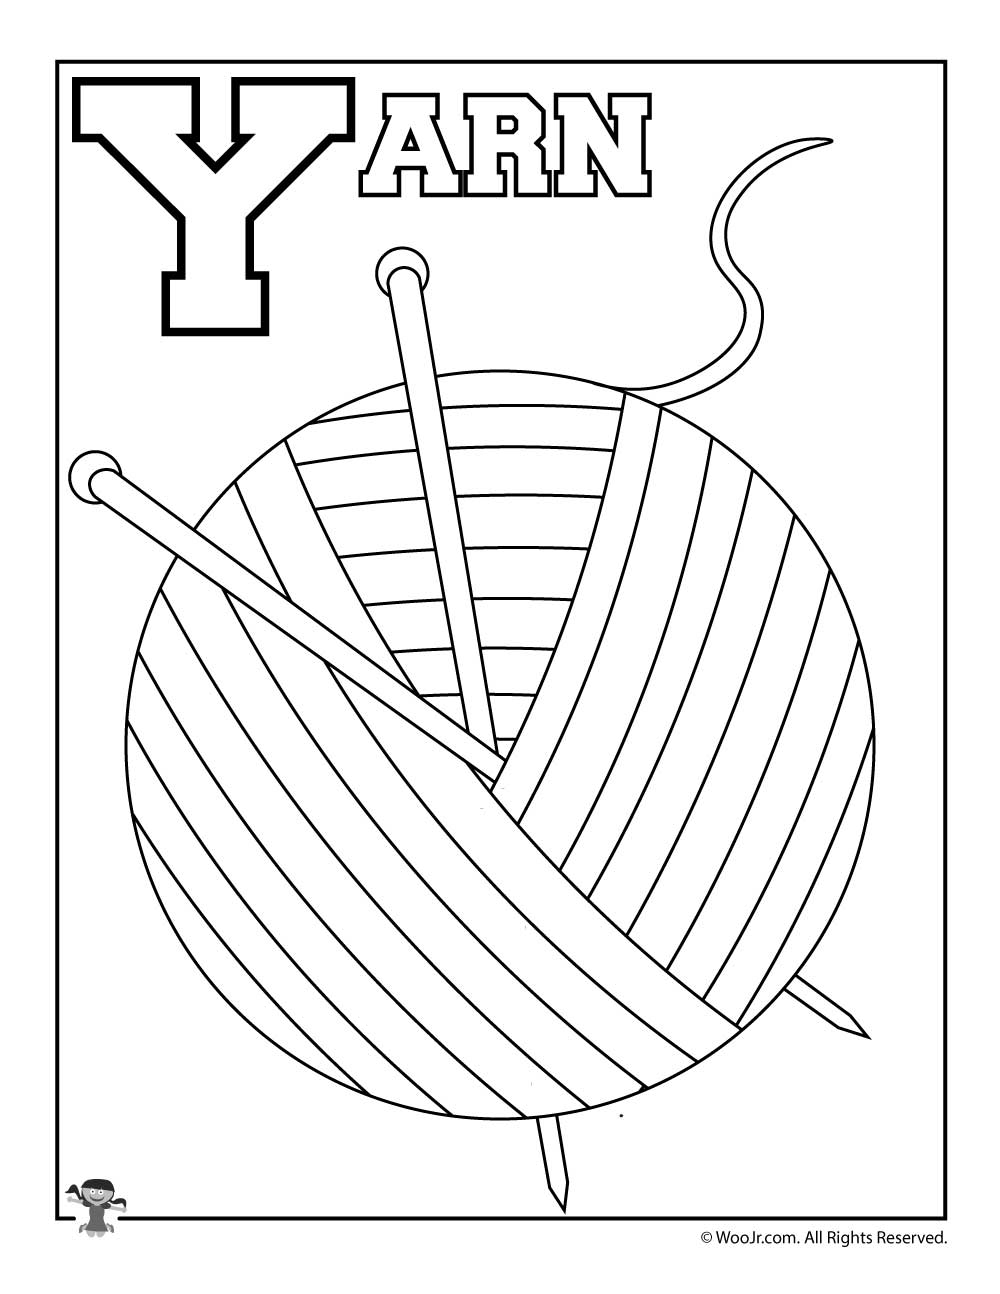 Y Is For Yarn Woo Jr Kids Activities